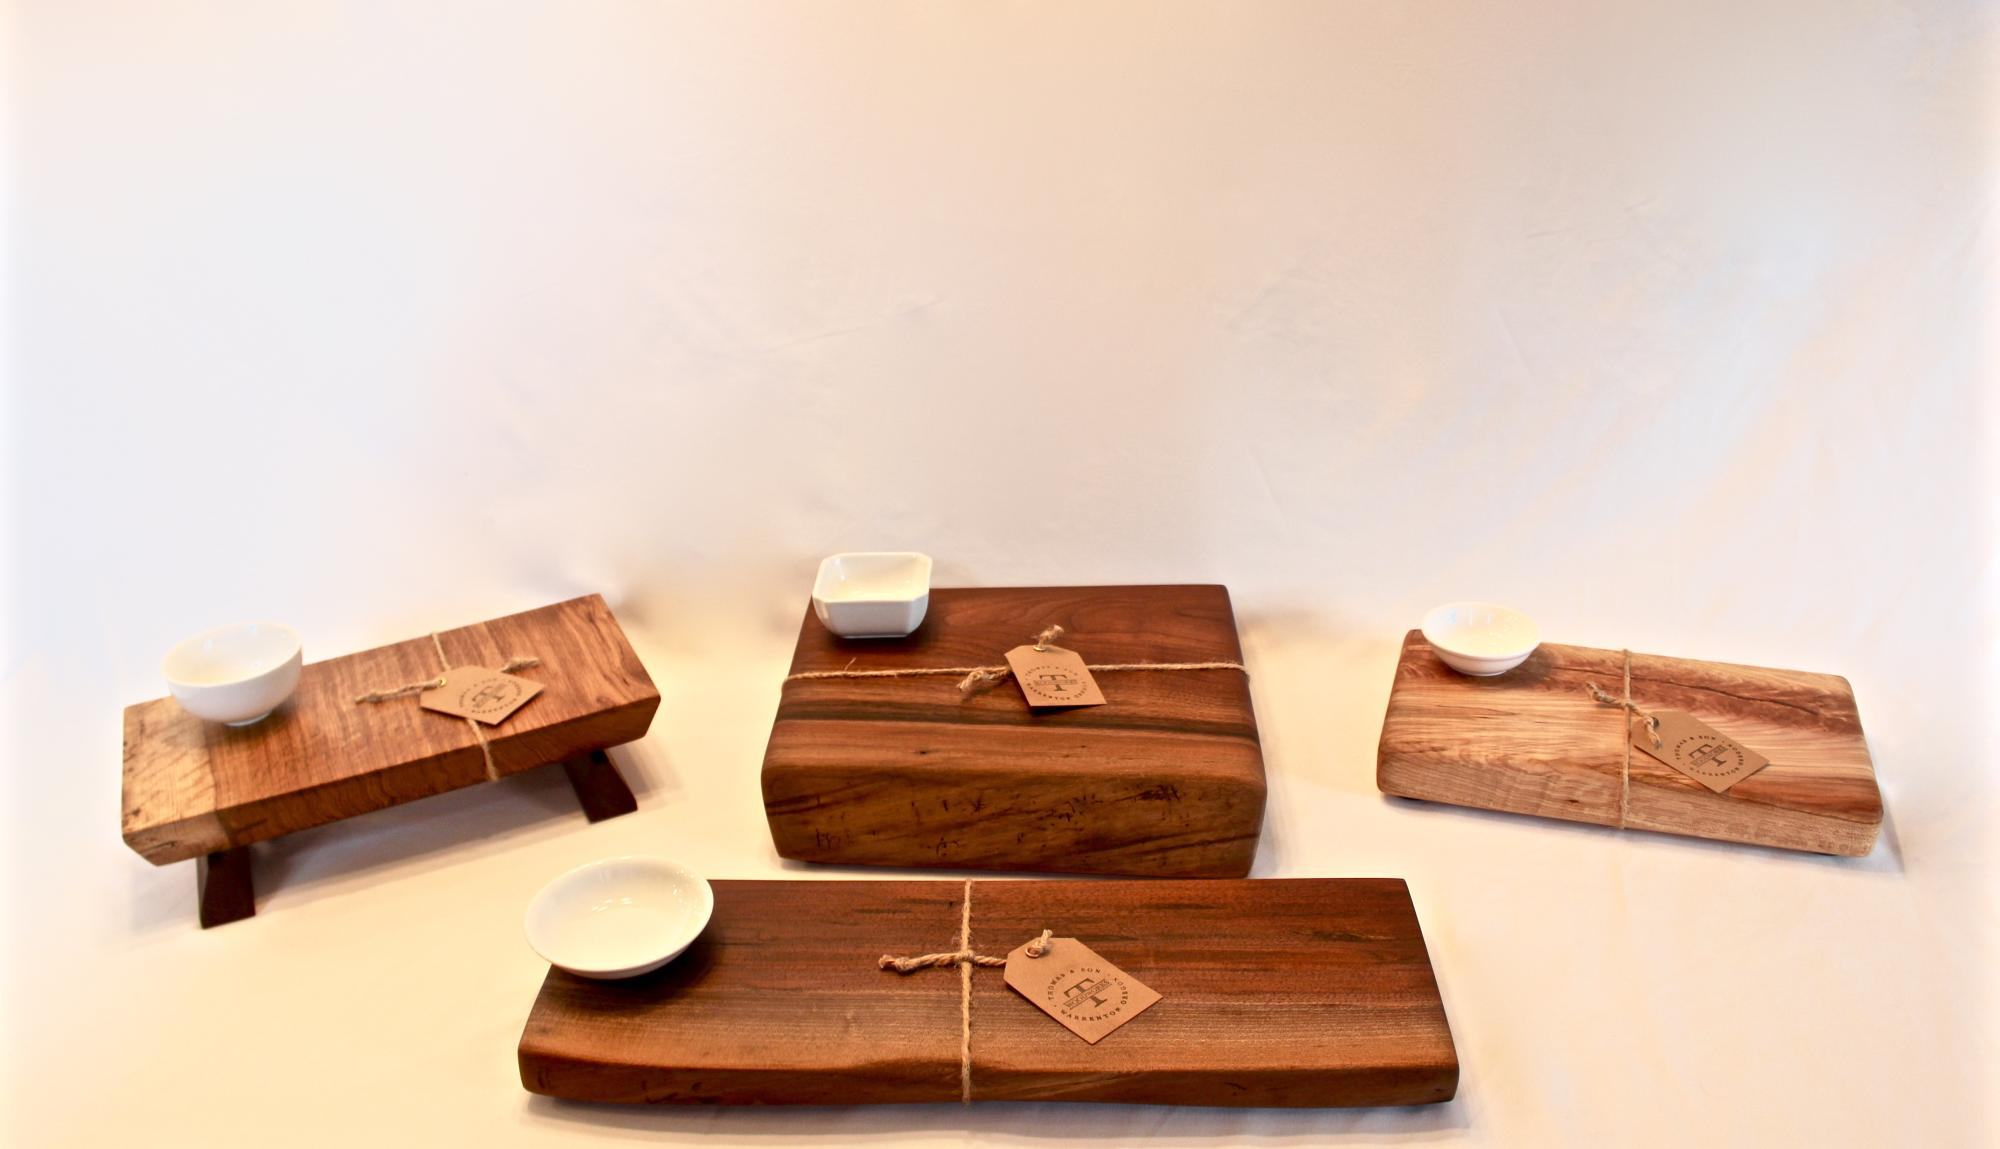 Hardwood cutting board/serving blocks with dipping bowls. $45-$95